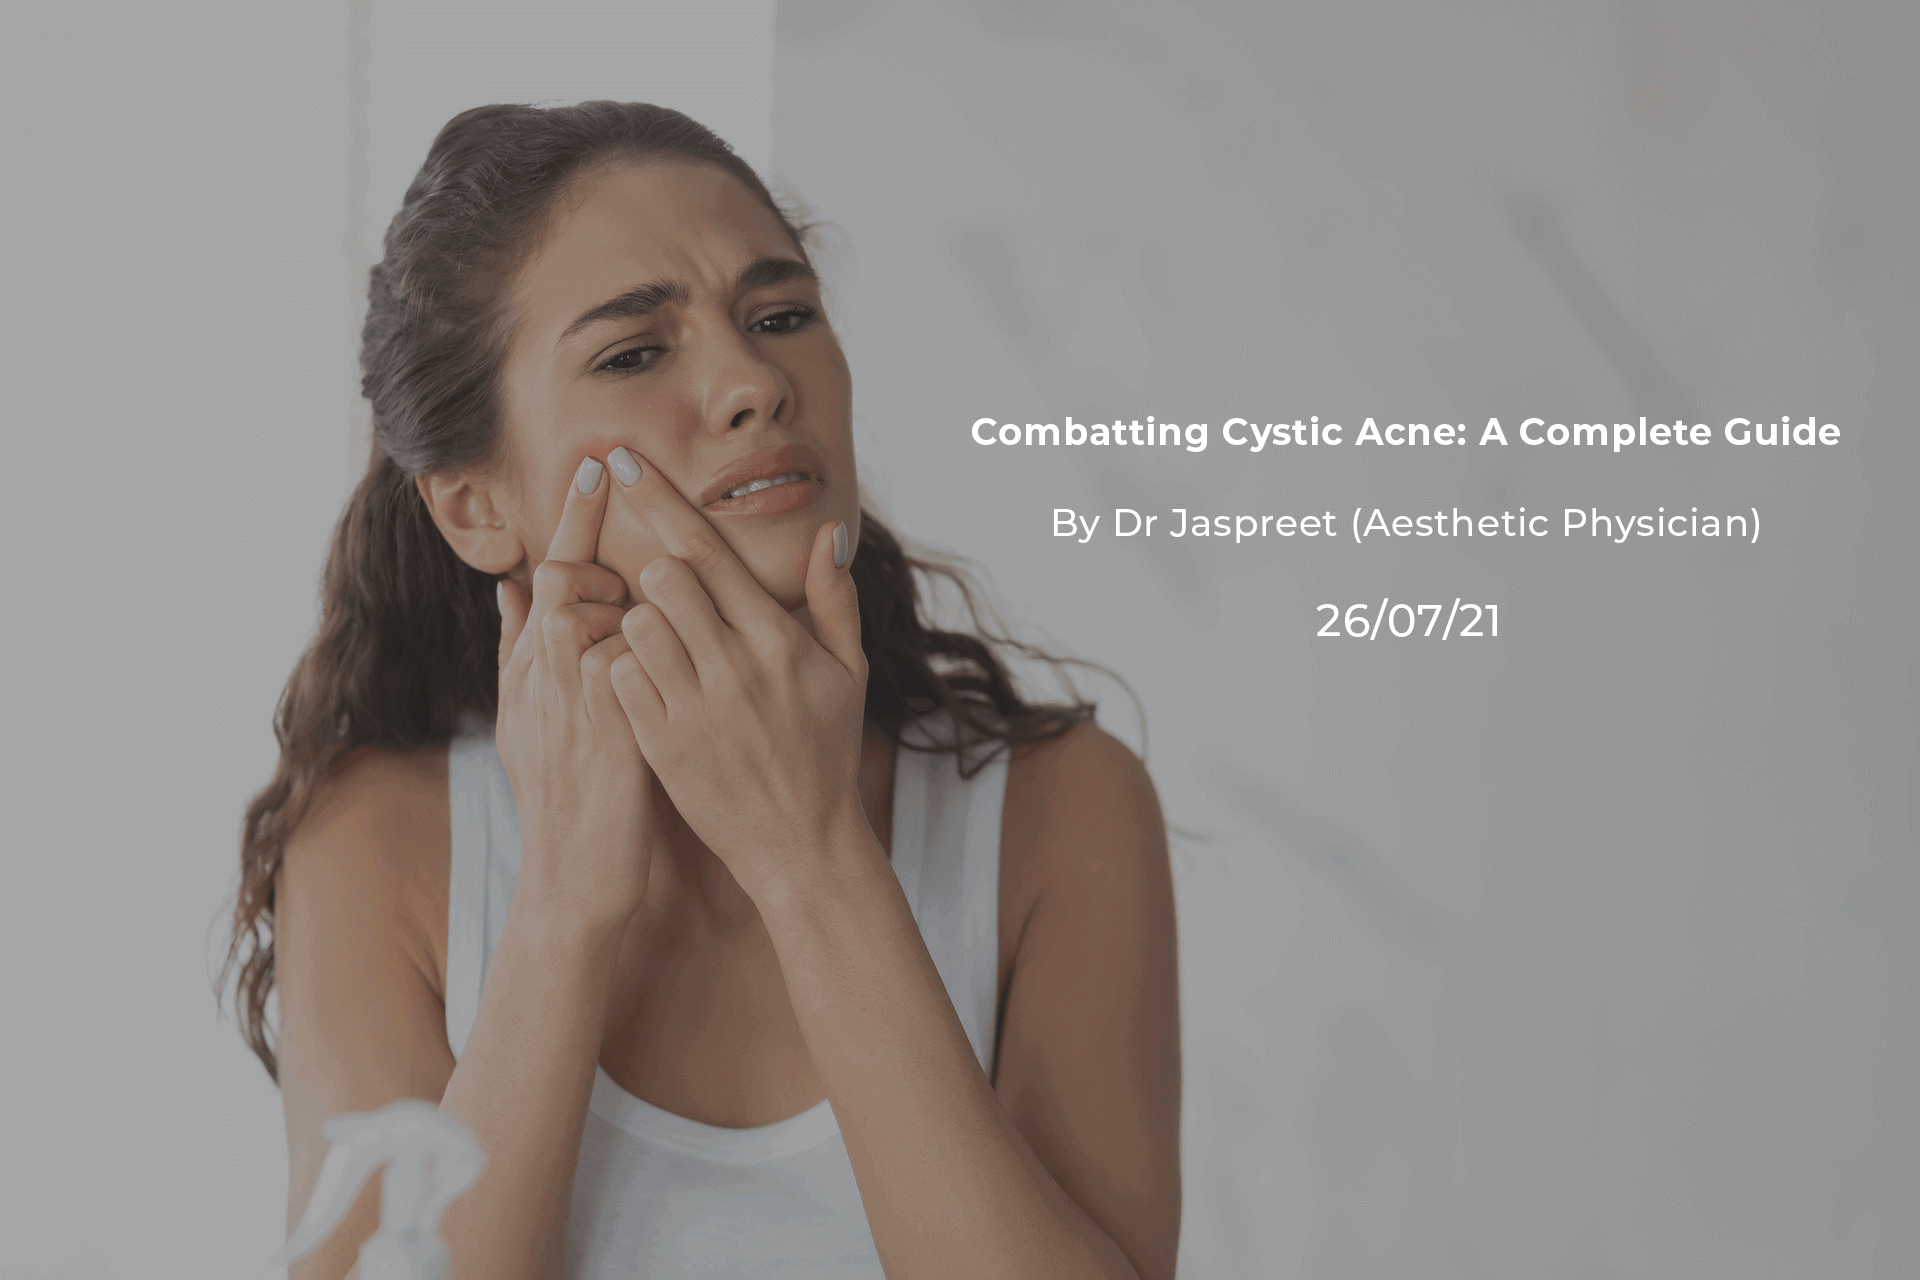 Combatting Cystic Acne: A Complete Guide